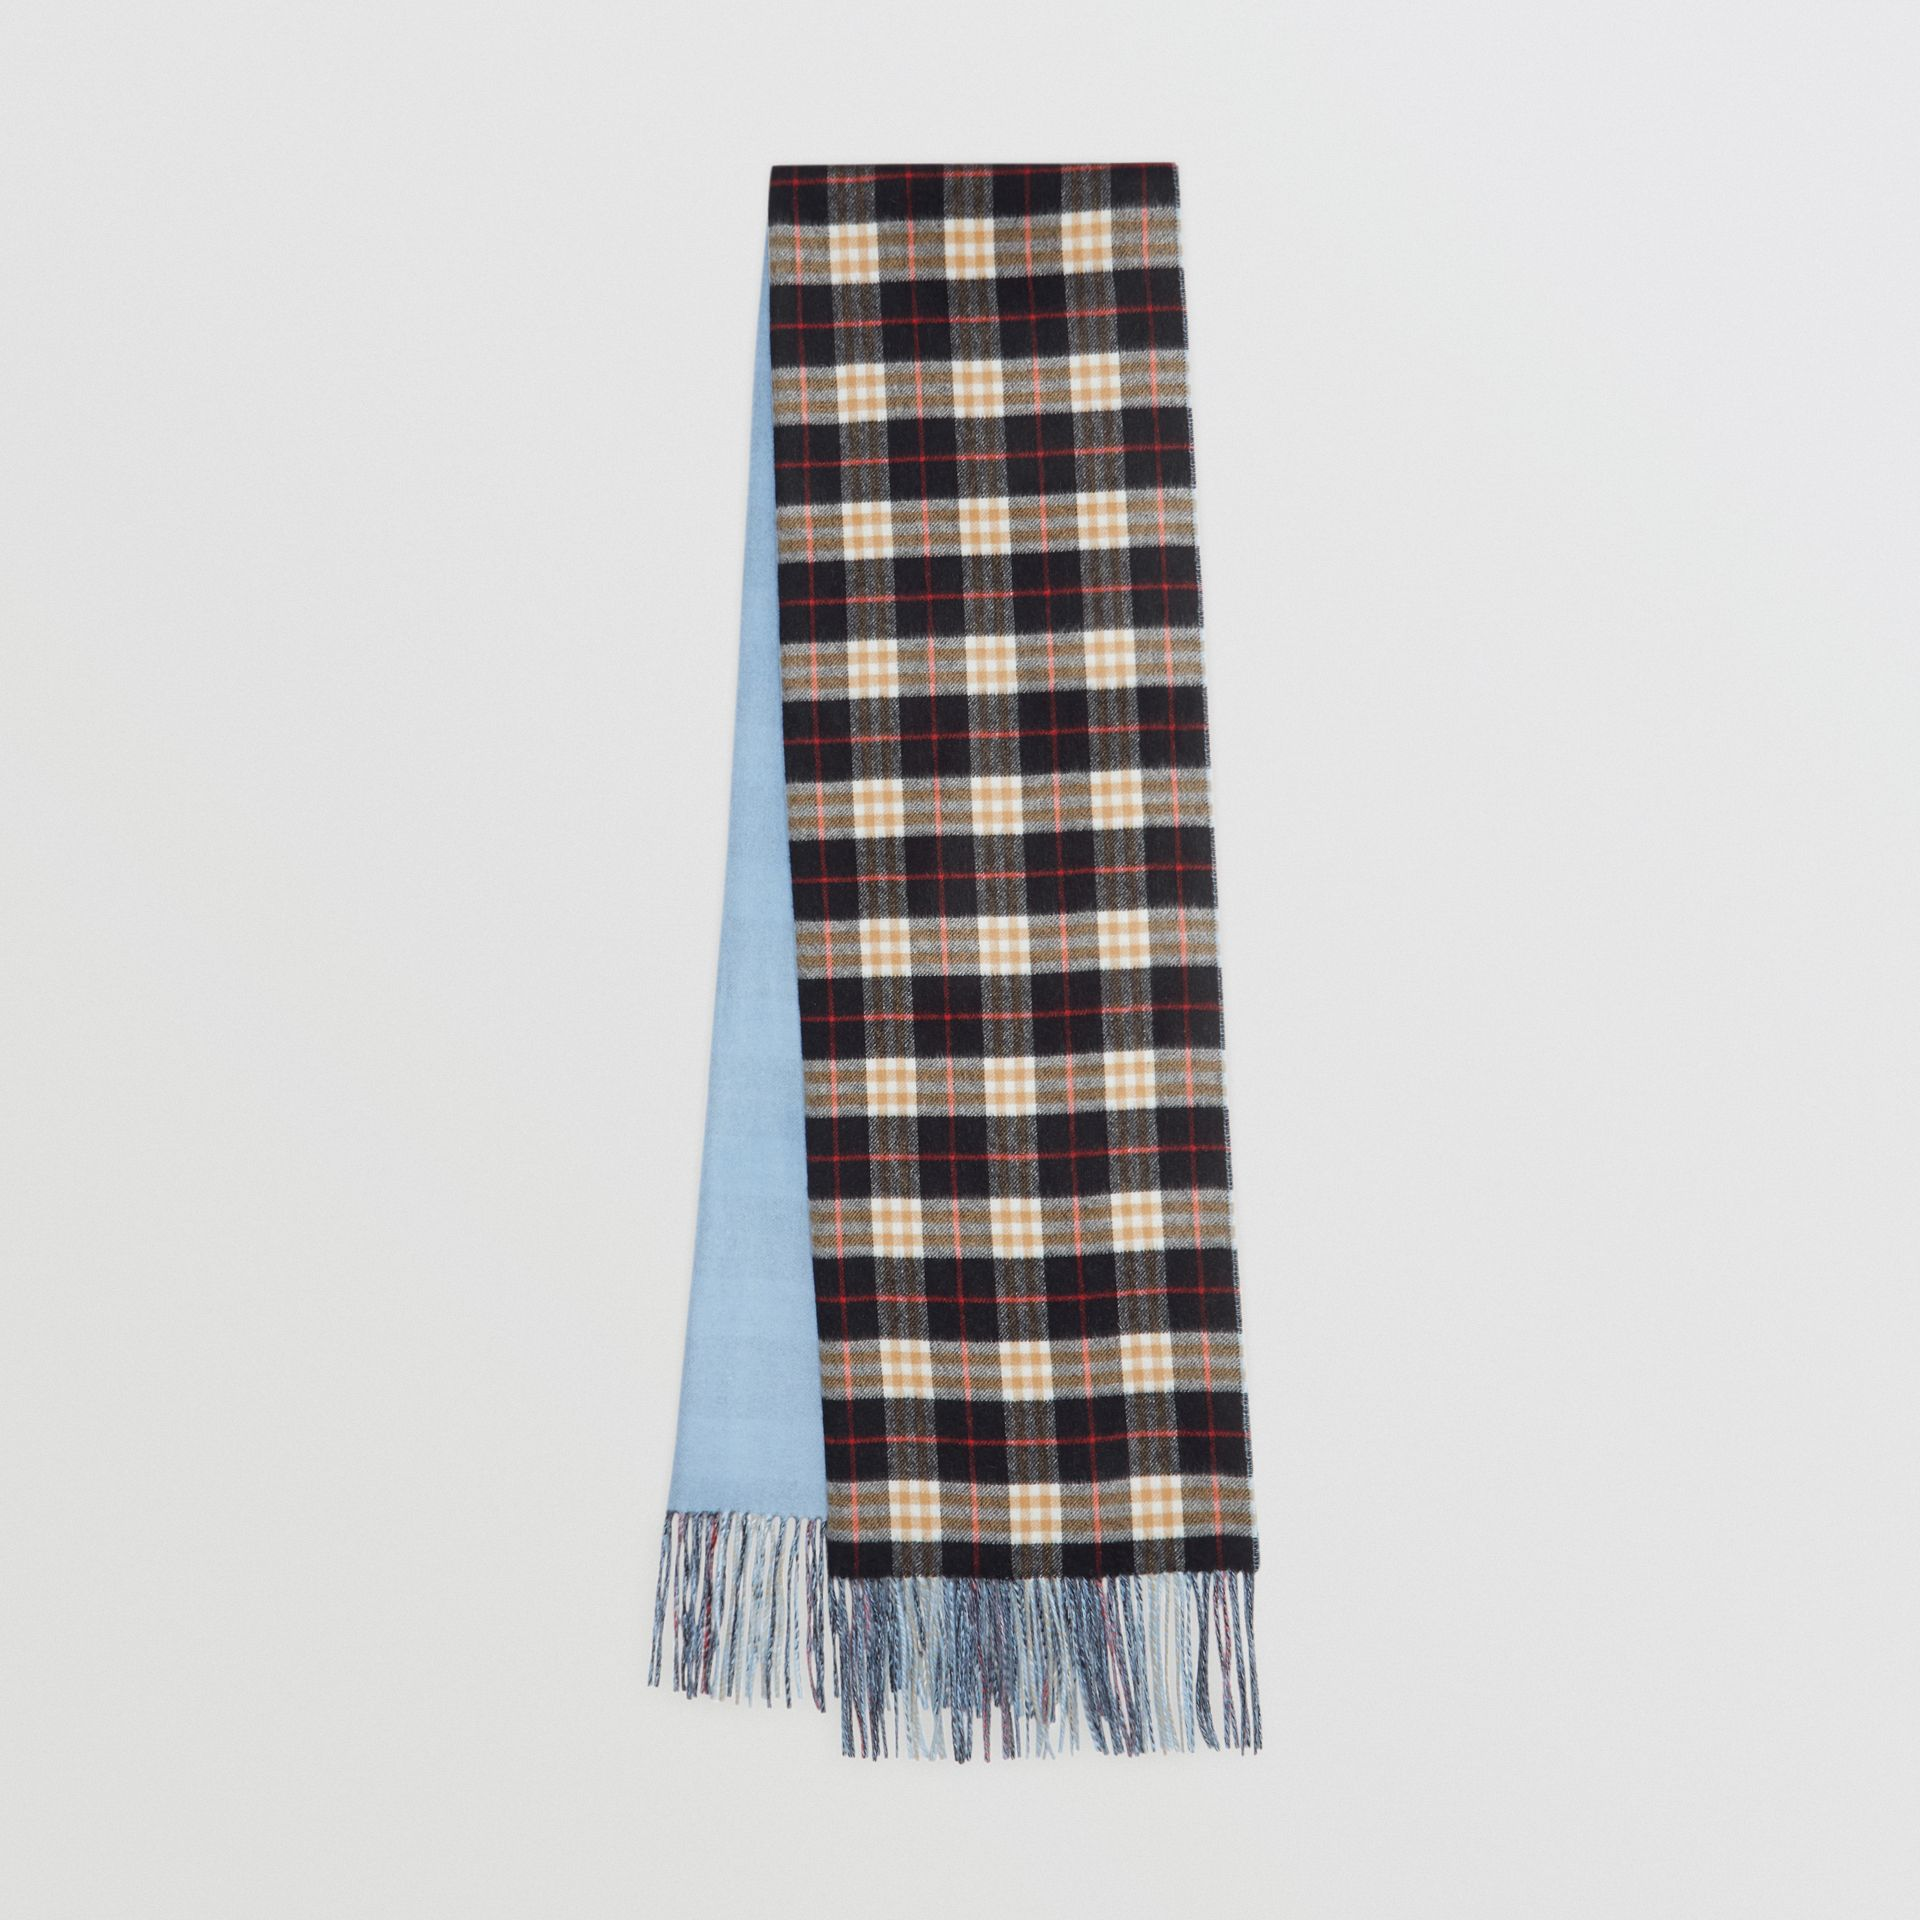 Colour Block Vintage Check Cashmere Scarf in Pale Air Force Blue | Burberry - gallery image 0